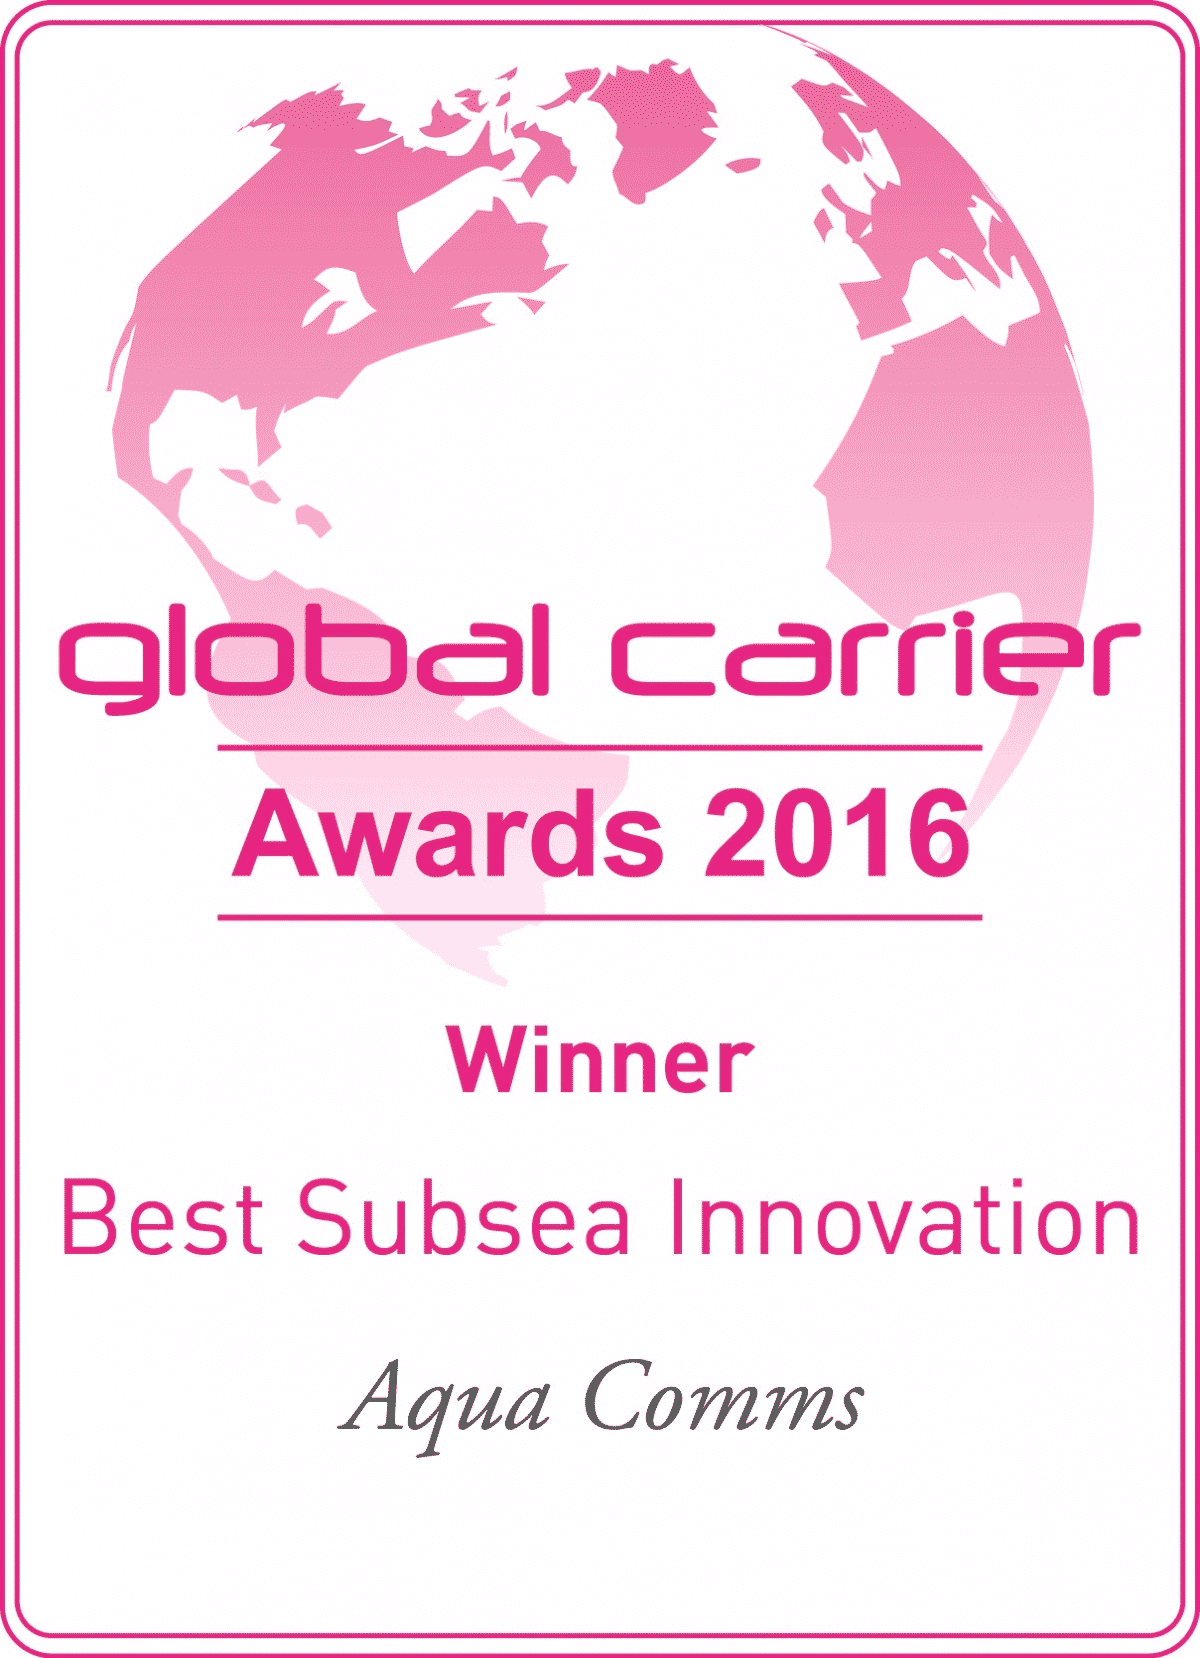 aqua-comms-global-carrier-2016